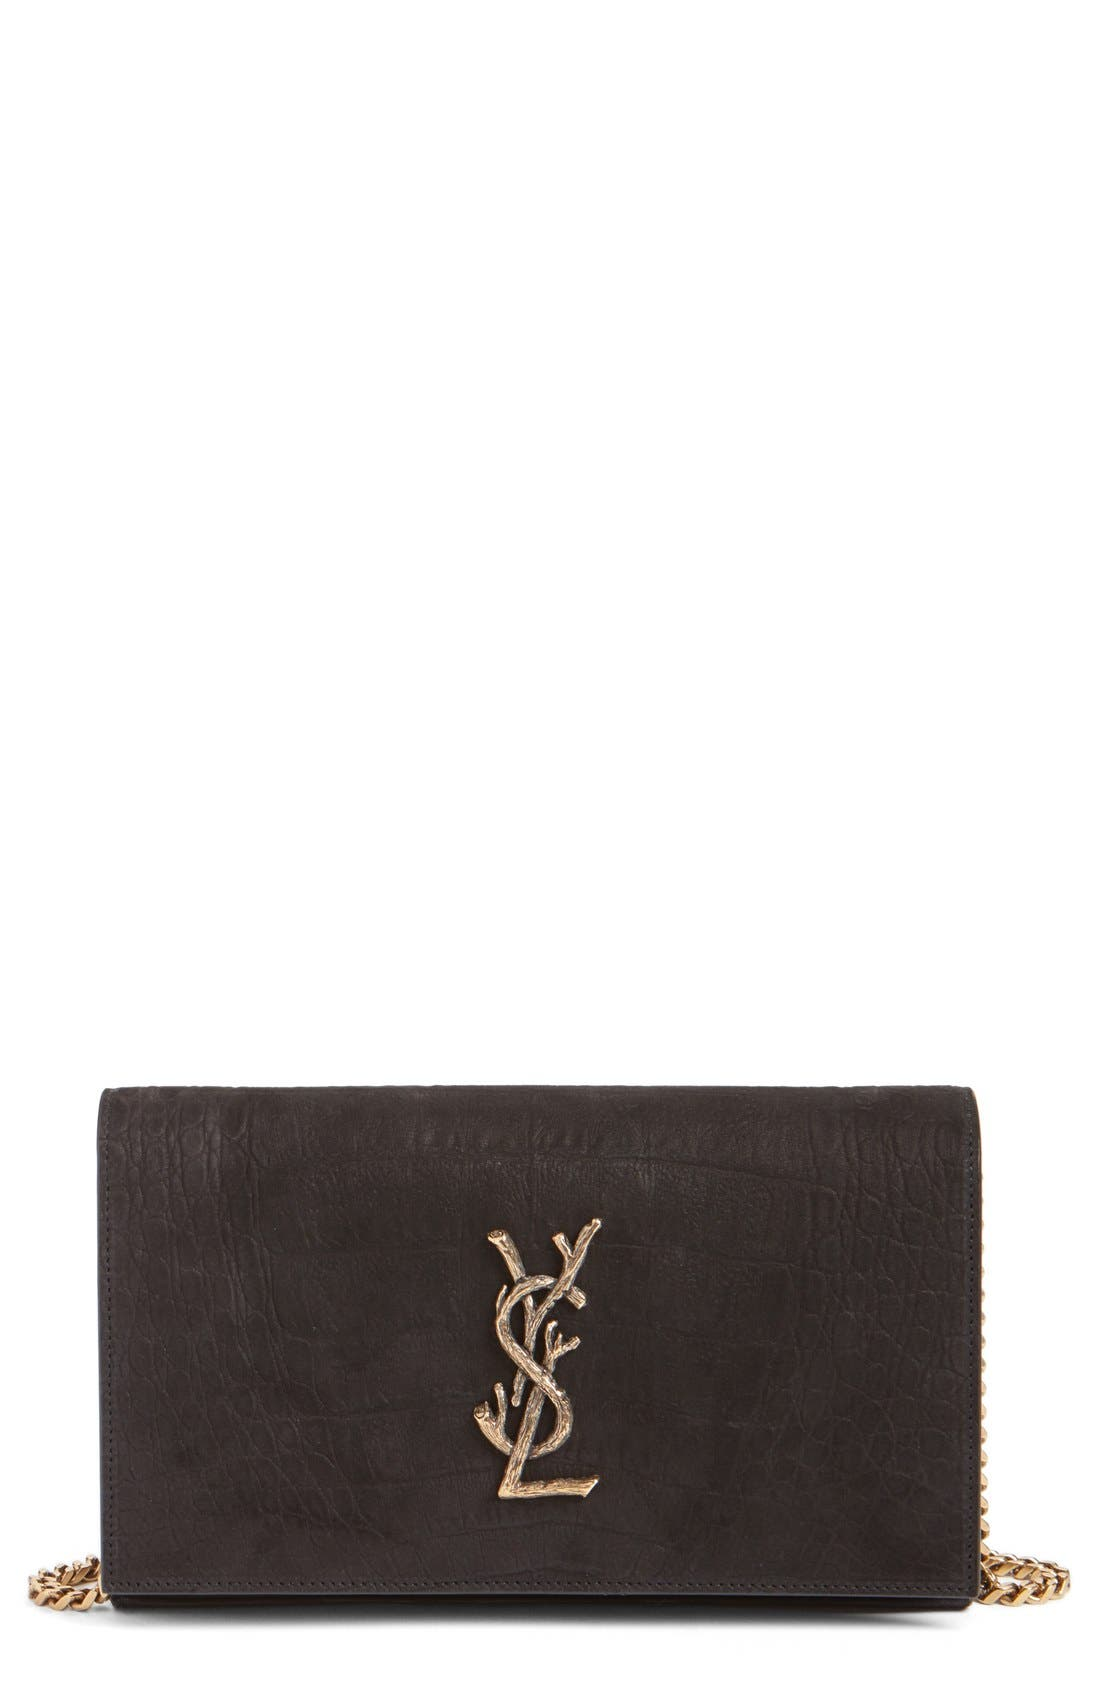 Alternate Image 1 Selected - Saint Laurent 'Small Kate - Tree' Croc Embossed Calfskin Leather Wallet on a Chain